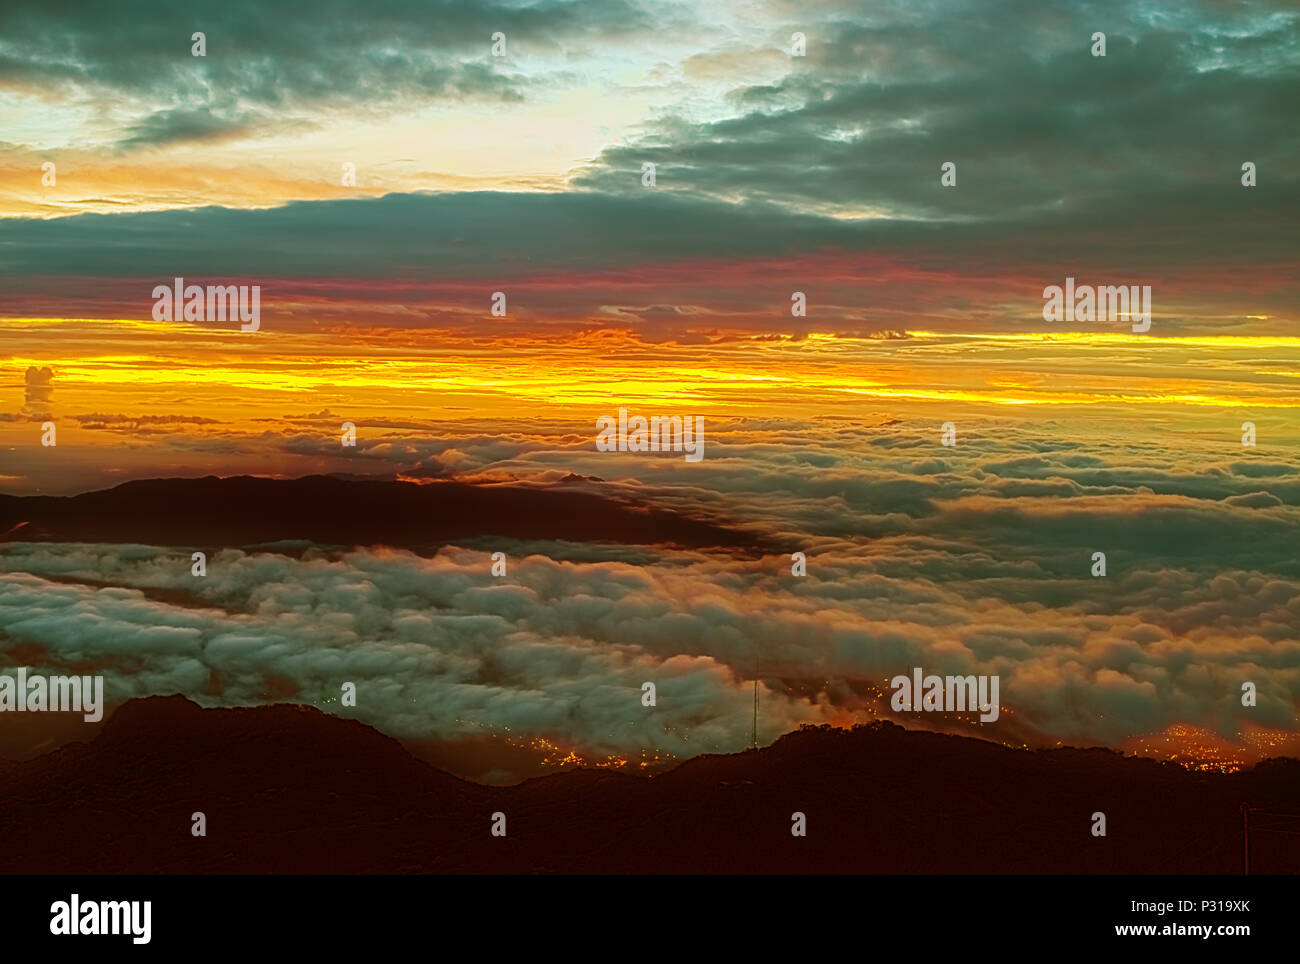 Sunrise as viewed from the top of volcan Baru in Panama. The lights of the city of David are seen below clouds. - Stock Image